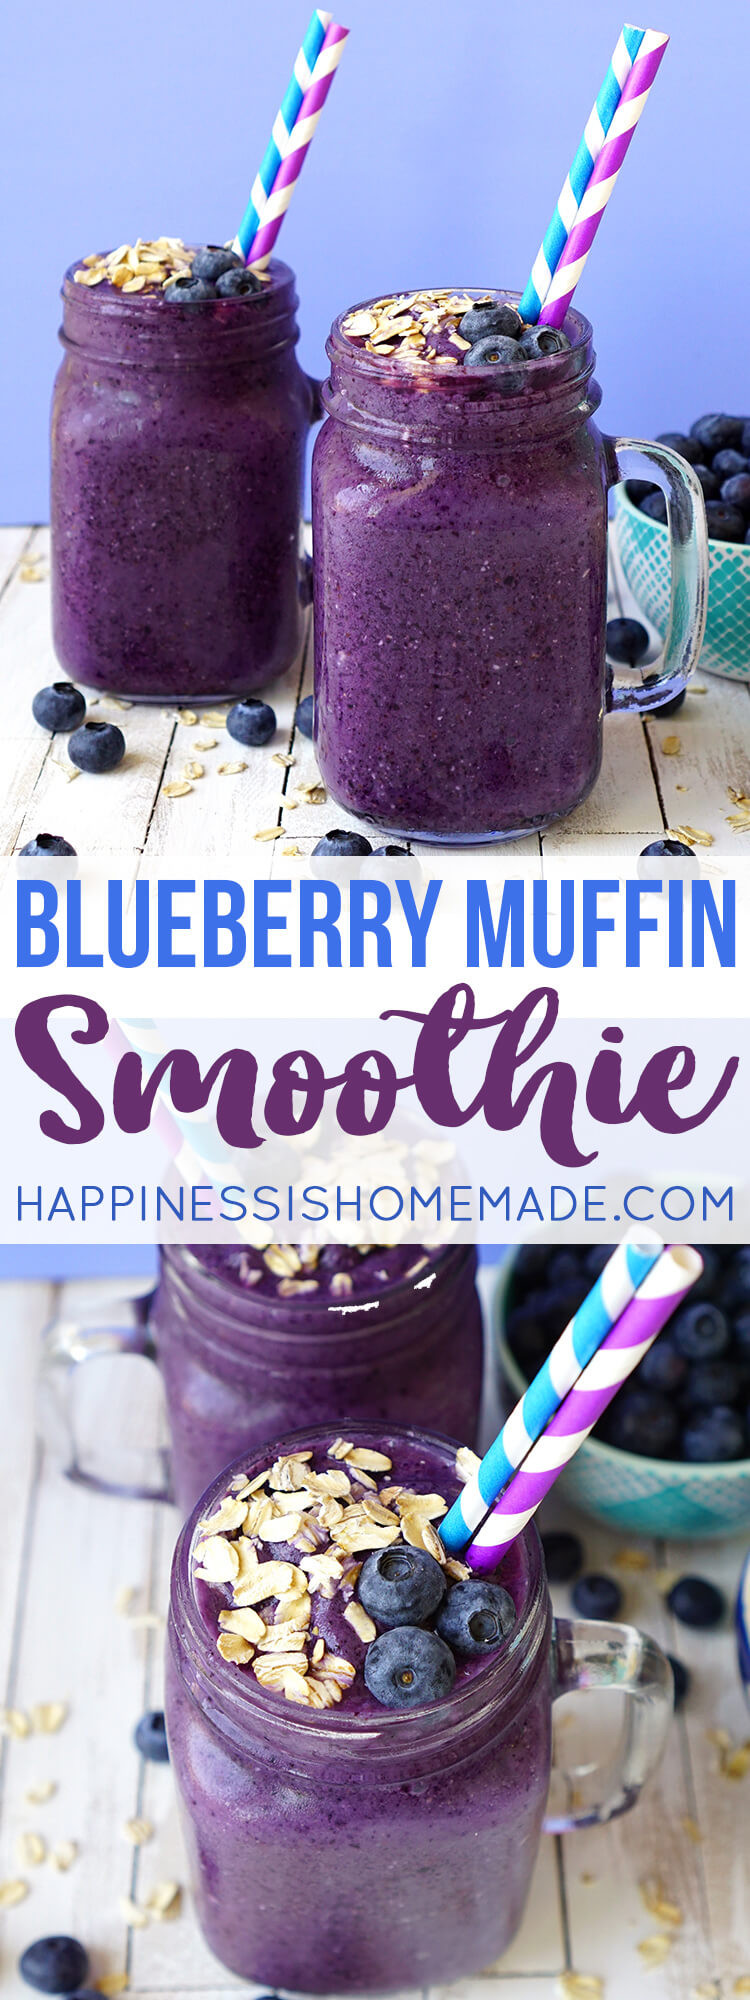 Blueberry Smoothies Healthy  Healthy Blueberry Muffin Smoothie Recipe Happiness is